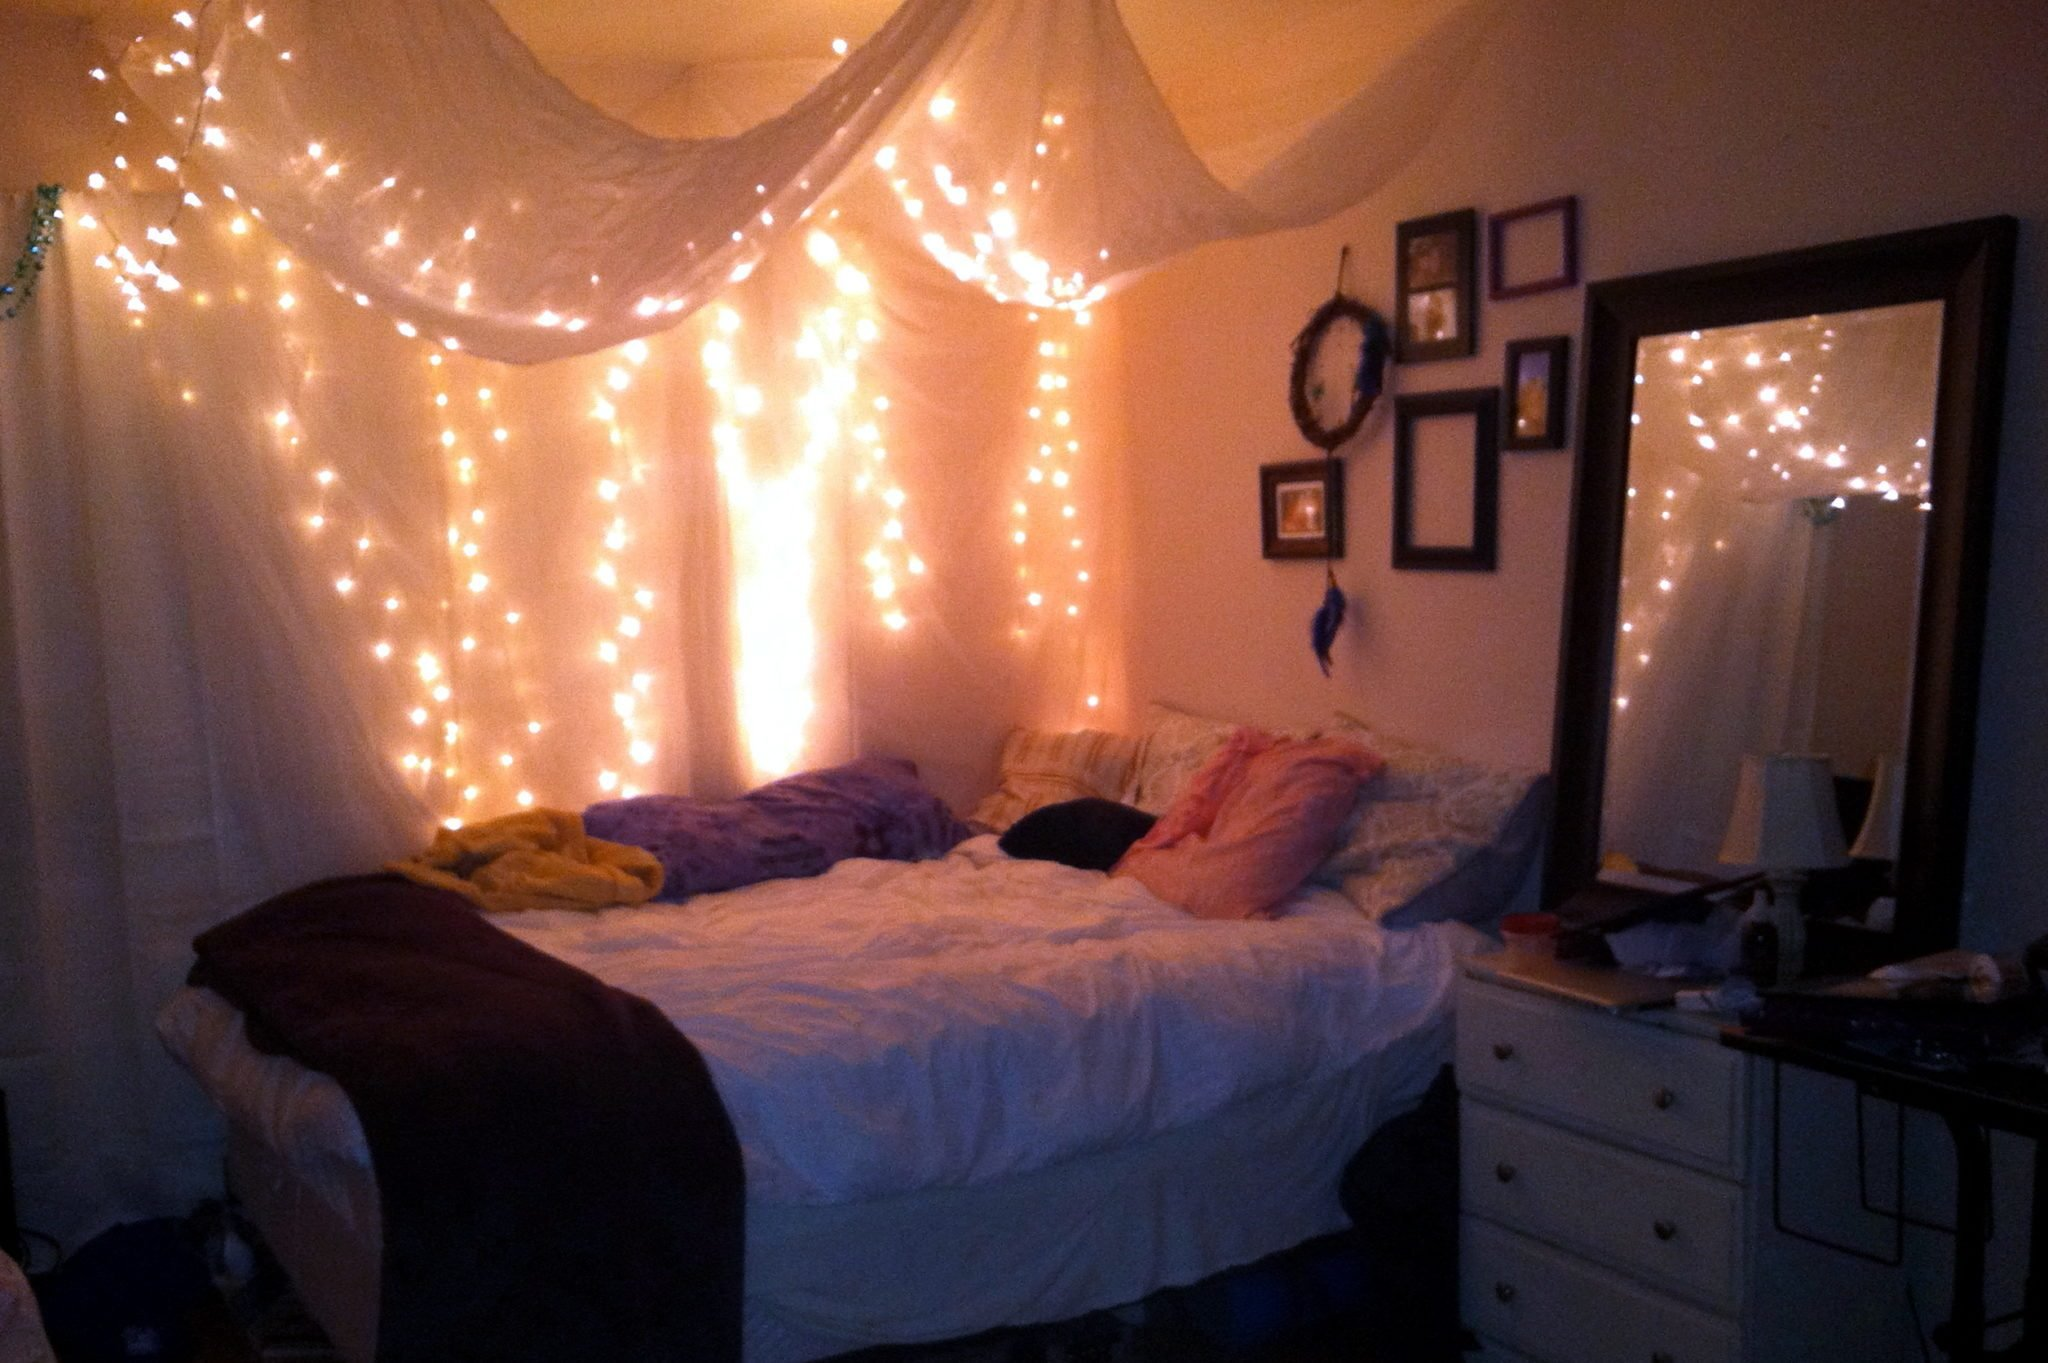 Best 30 Ways To Create A Romantic Ambiance With String Lights With Pictures